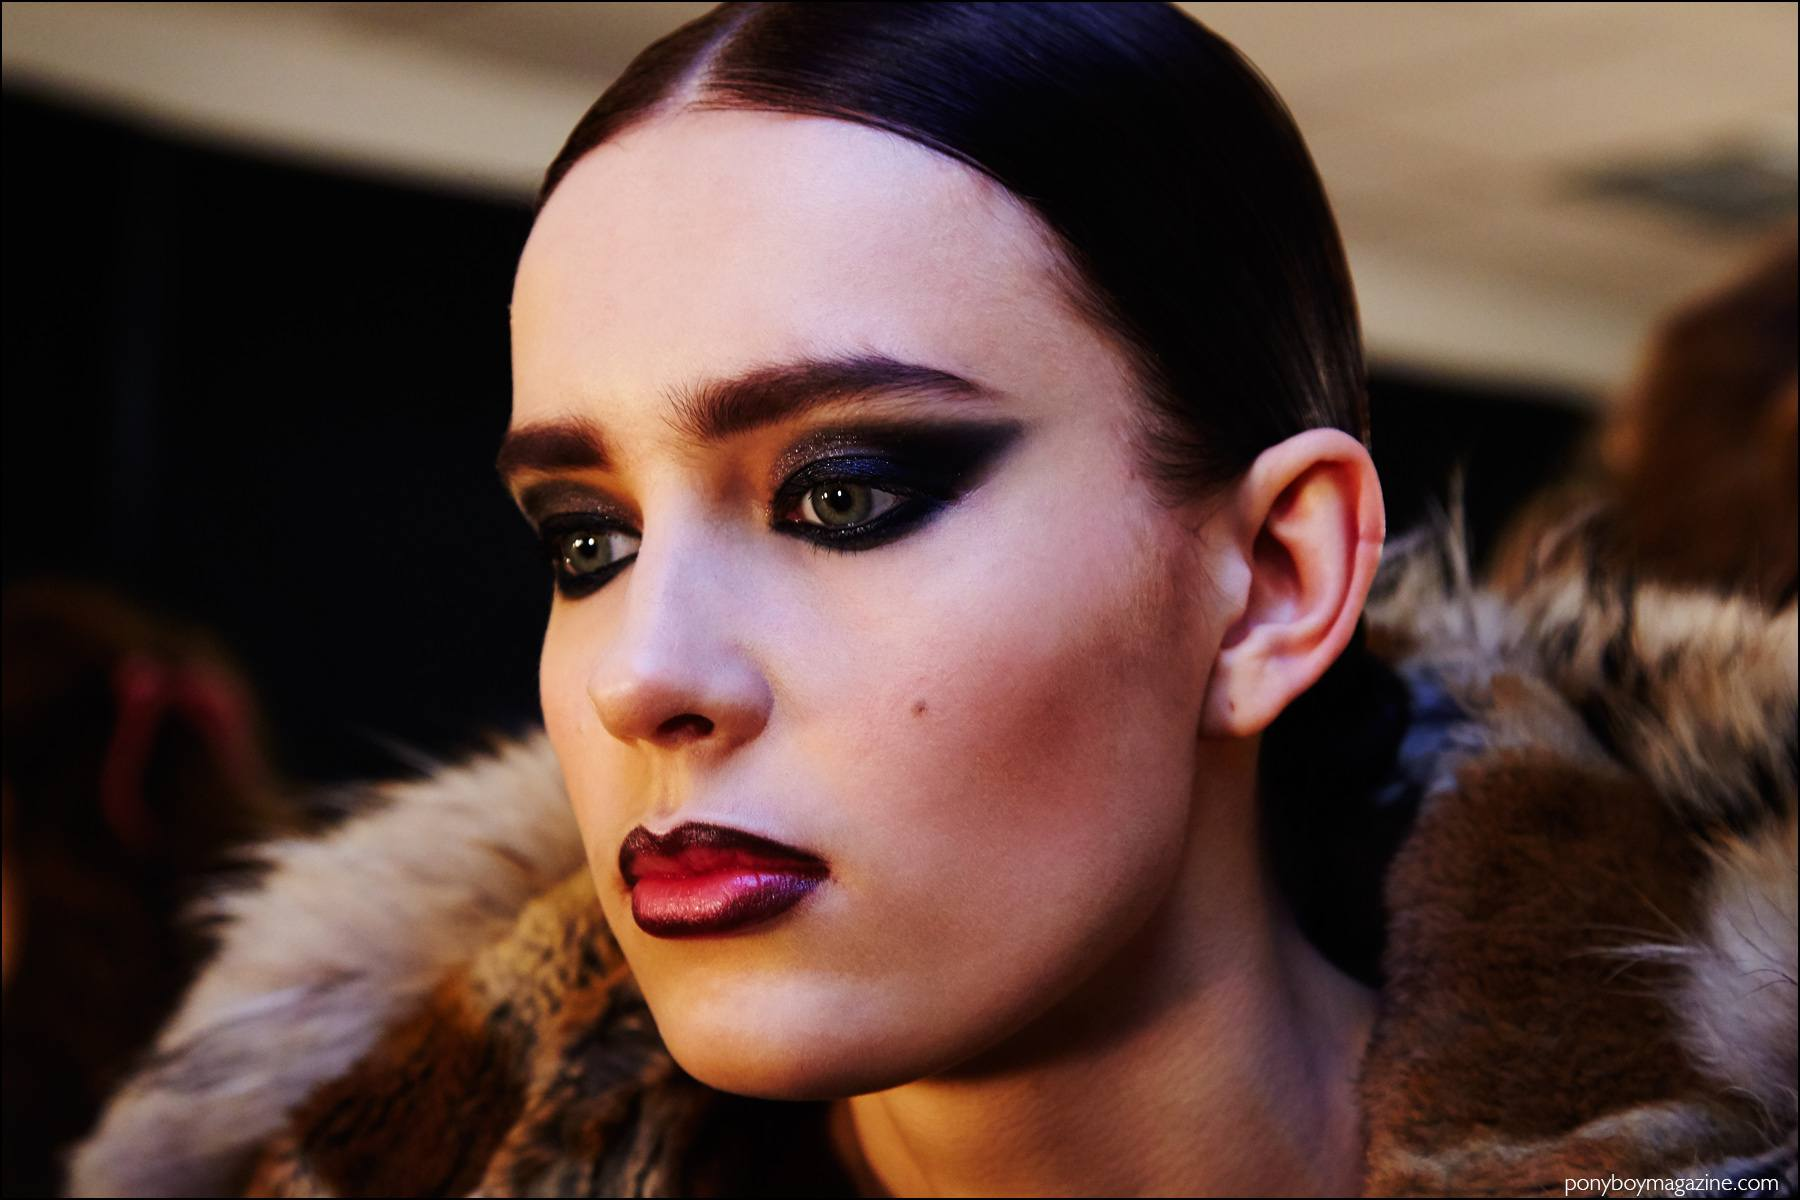 Dramatic makeup photographed on a model, backstage at Georgine F/W16 womenswear show. Photography by Alexander Thompson for Ponyboy magazine NY.